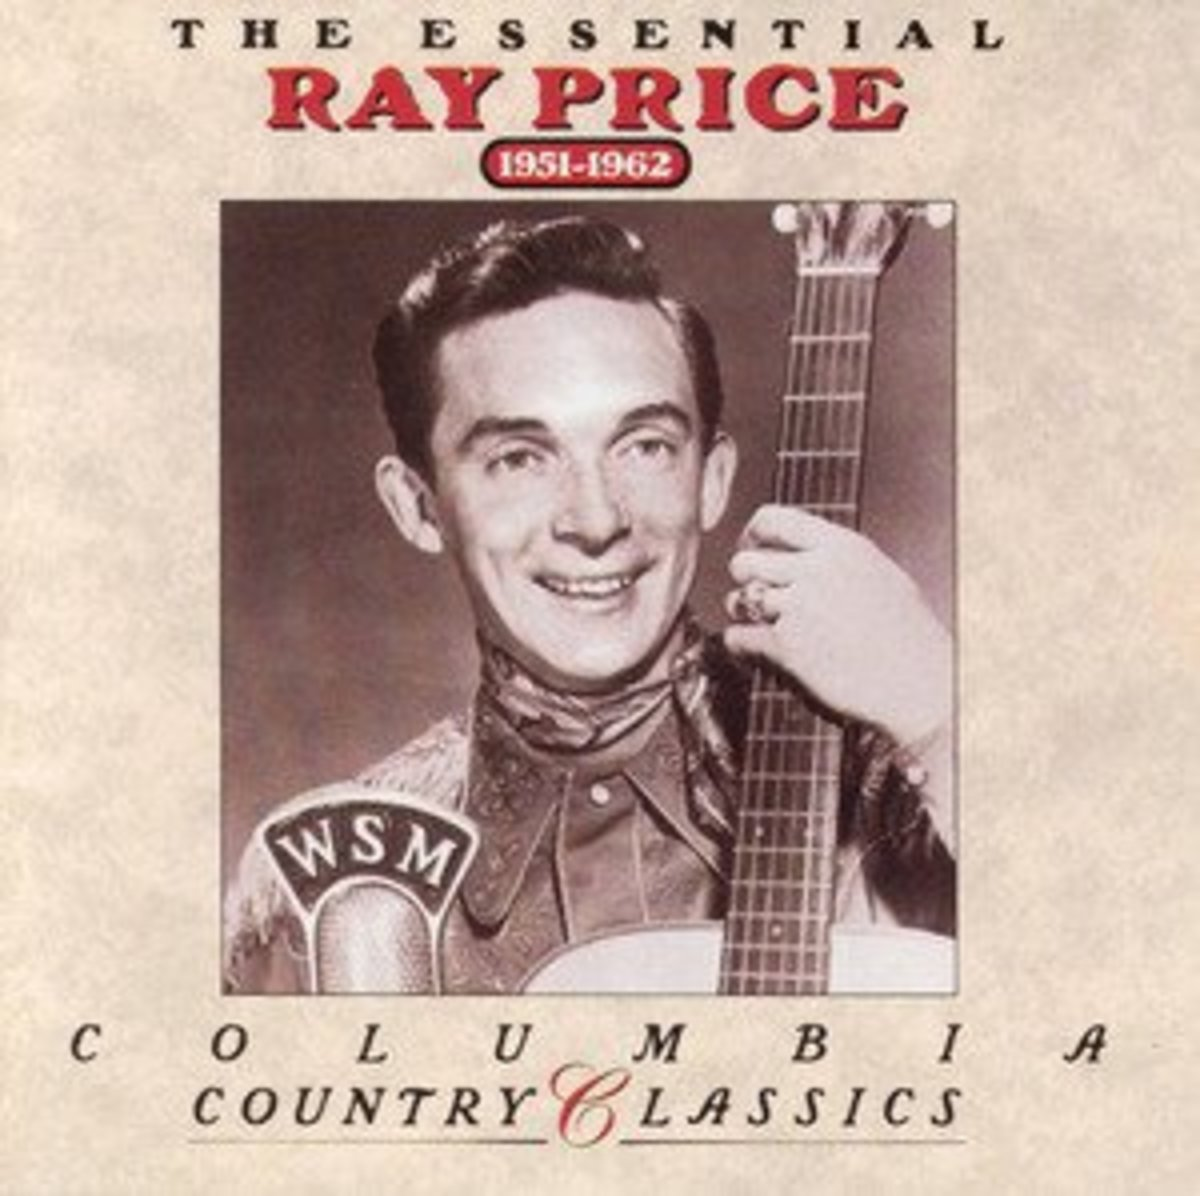 Ray Price, Country Classics, Album cover 1951-1962